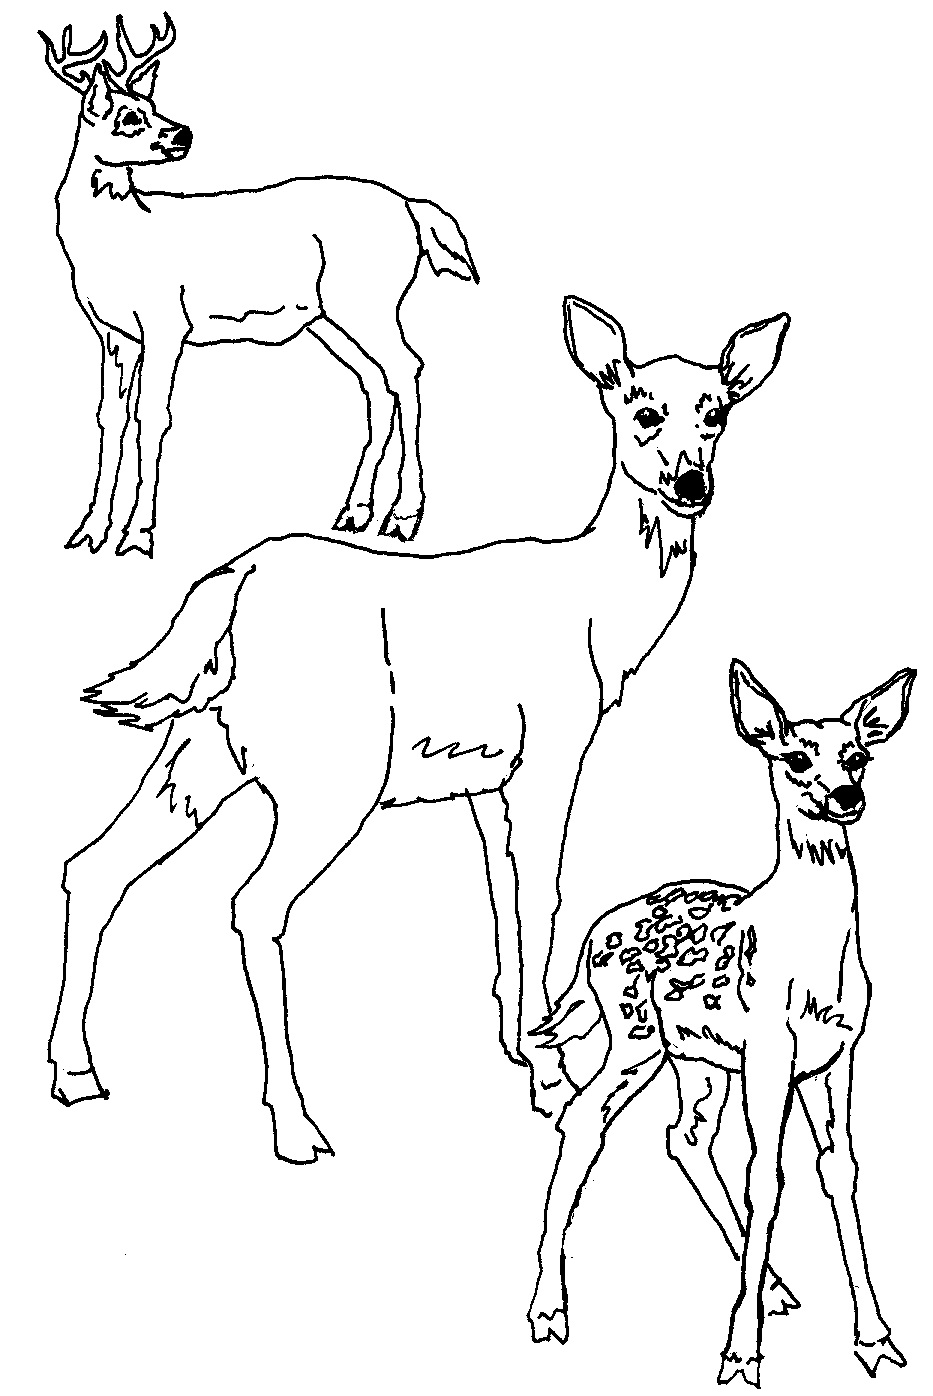 Free coloring page deer - Coloring Pages Of Deer Photo Free Printable Deer Coloring Pages For Kids Animal Place On Free